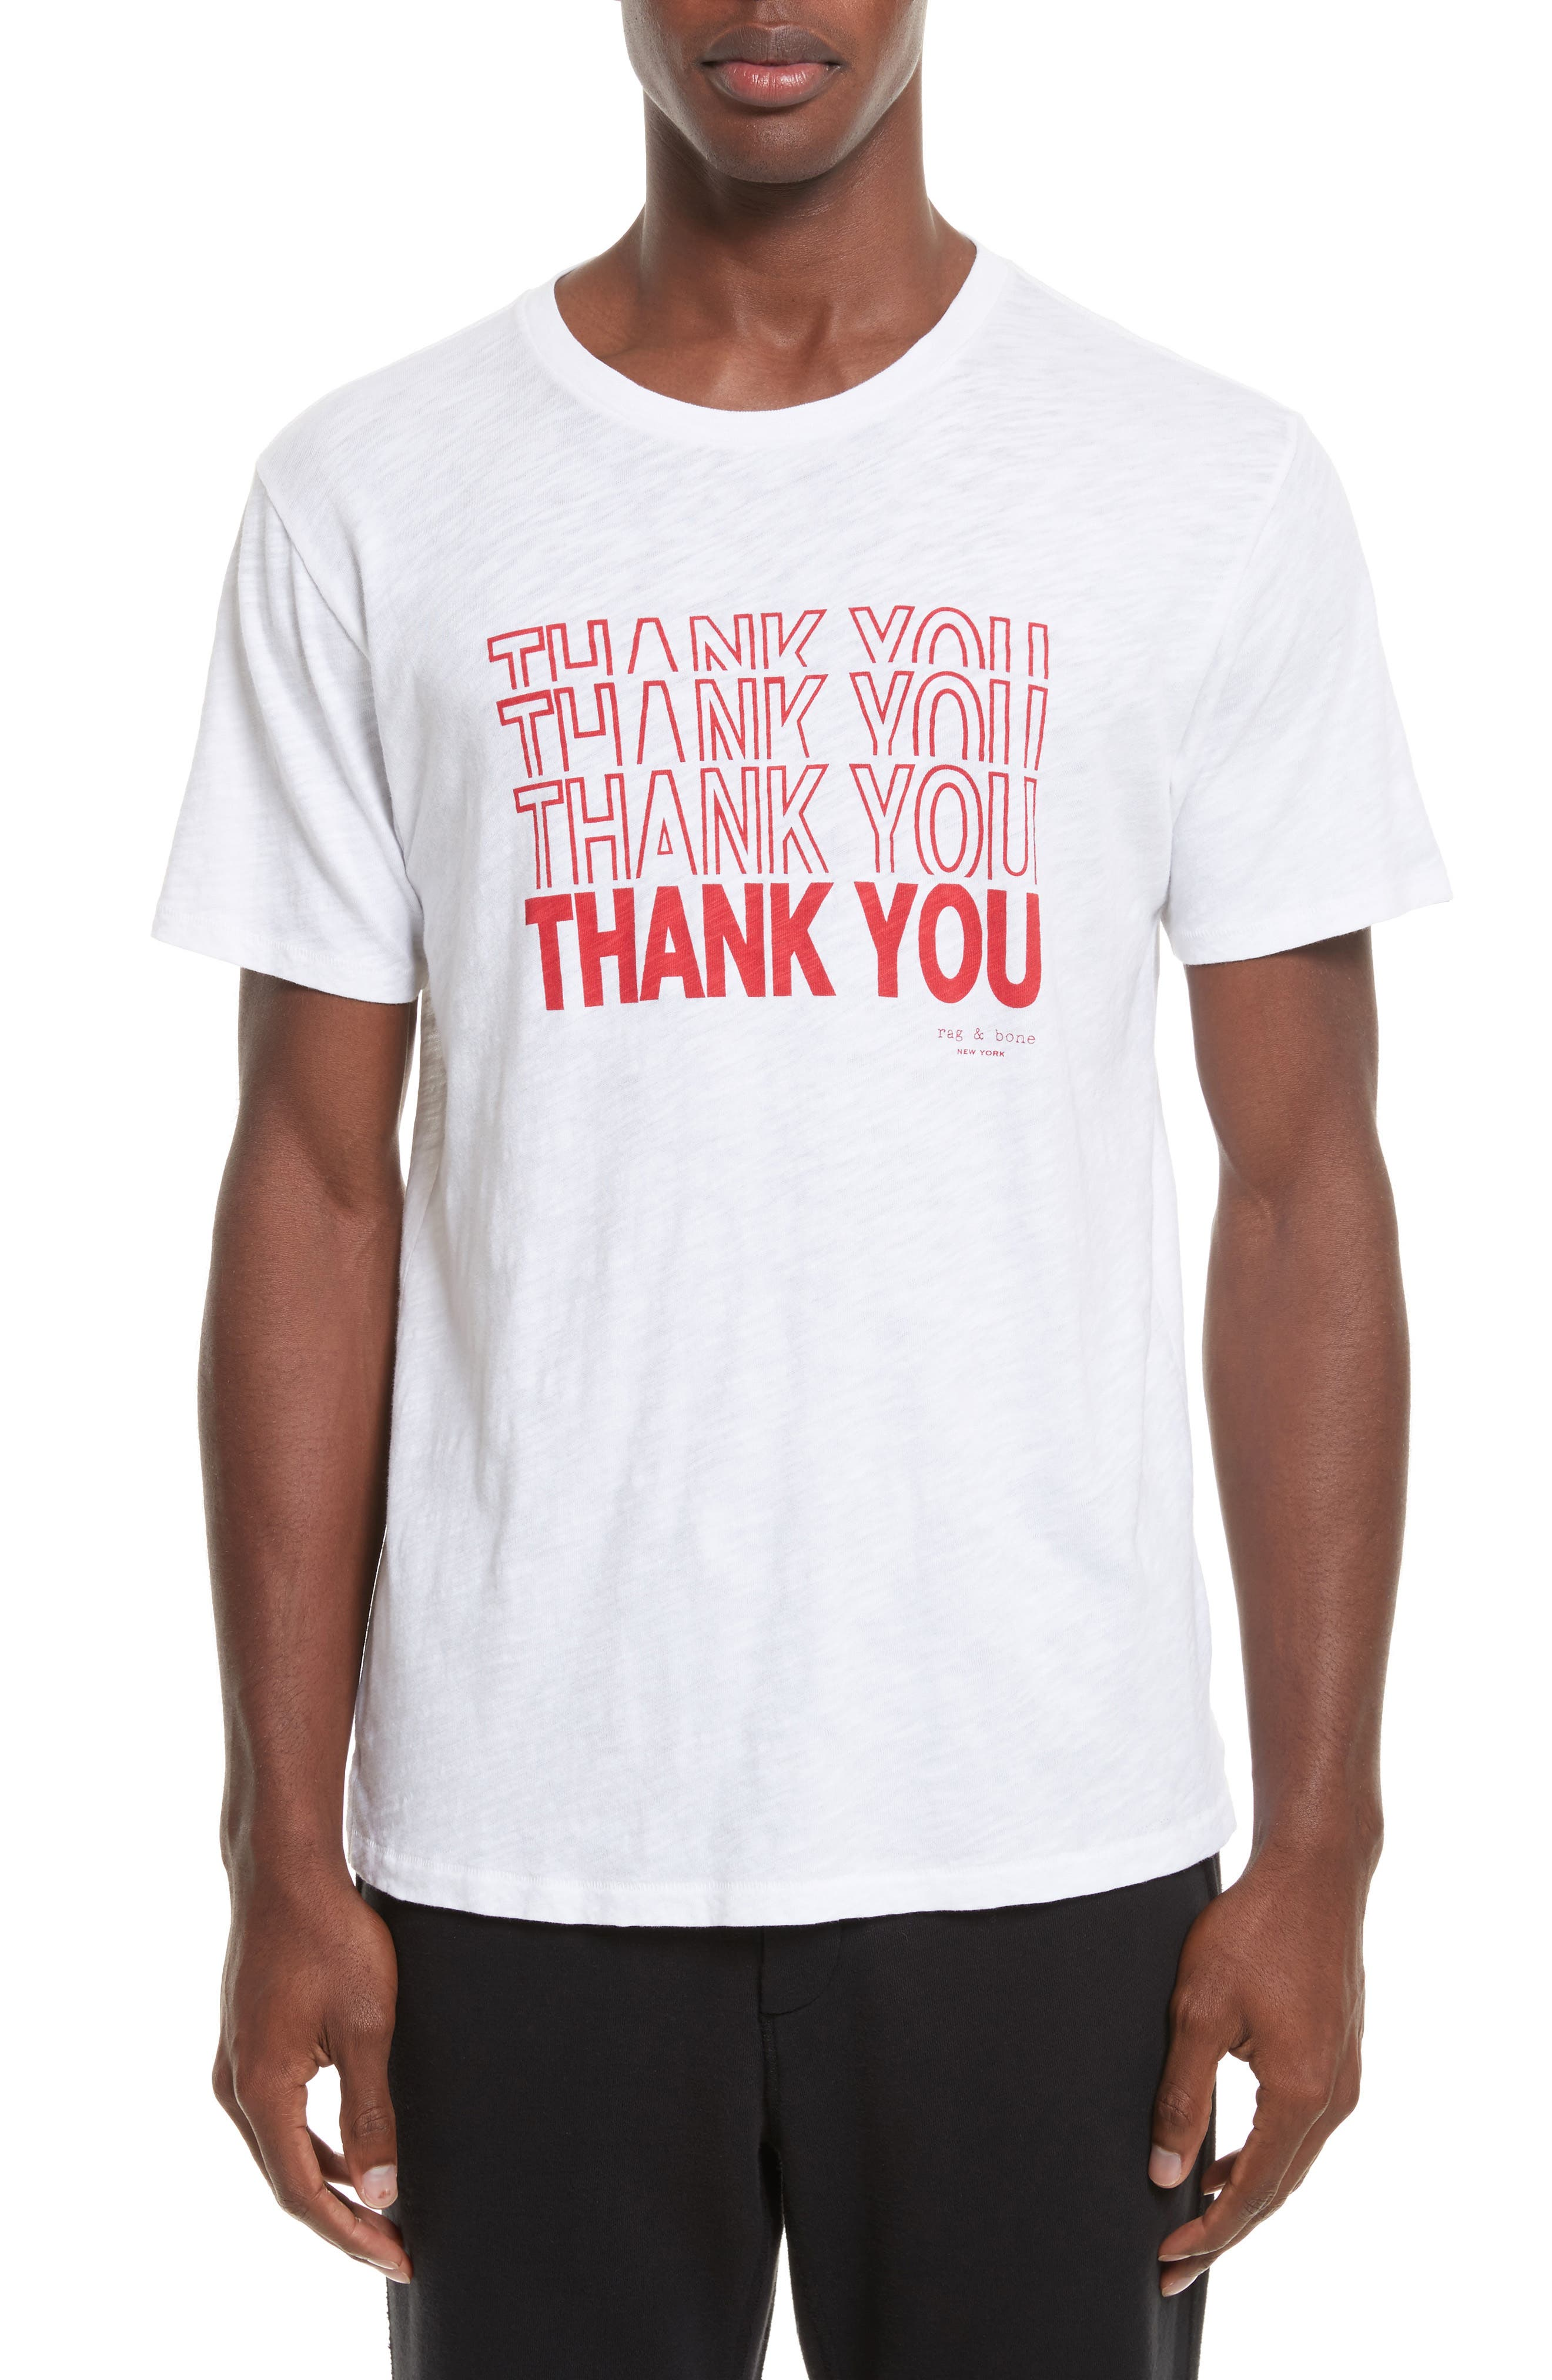 Alternate Image 1 Selected - rag & bone Thank You Graphic T-Shirt